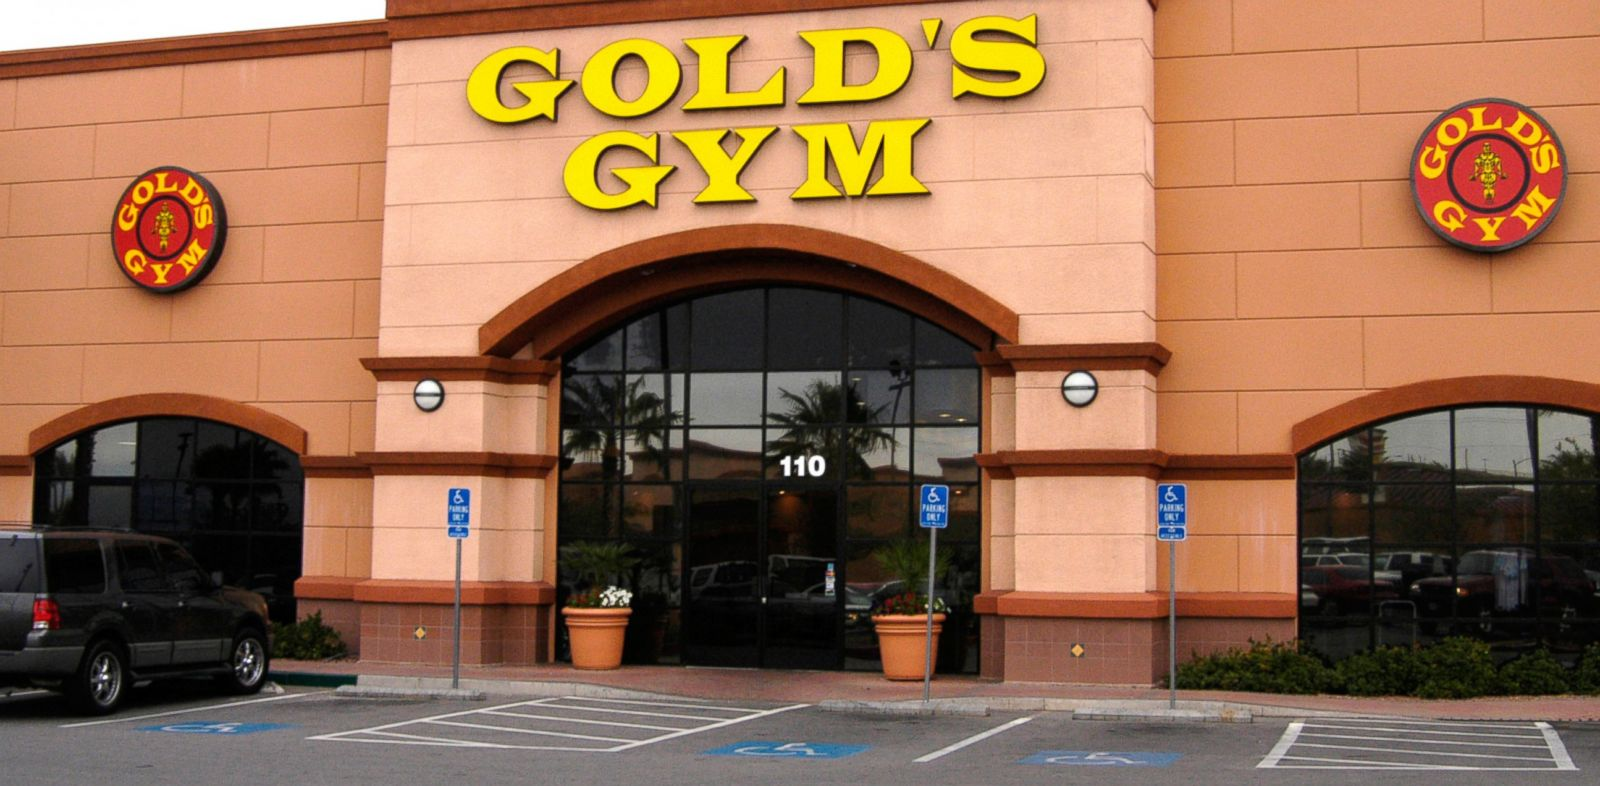 Dear ABC News Fixer: Billing Nightmare in Gold's Gym - ABC ...